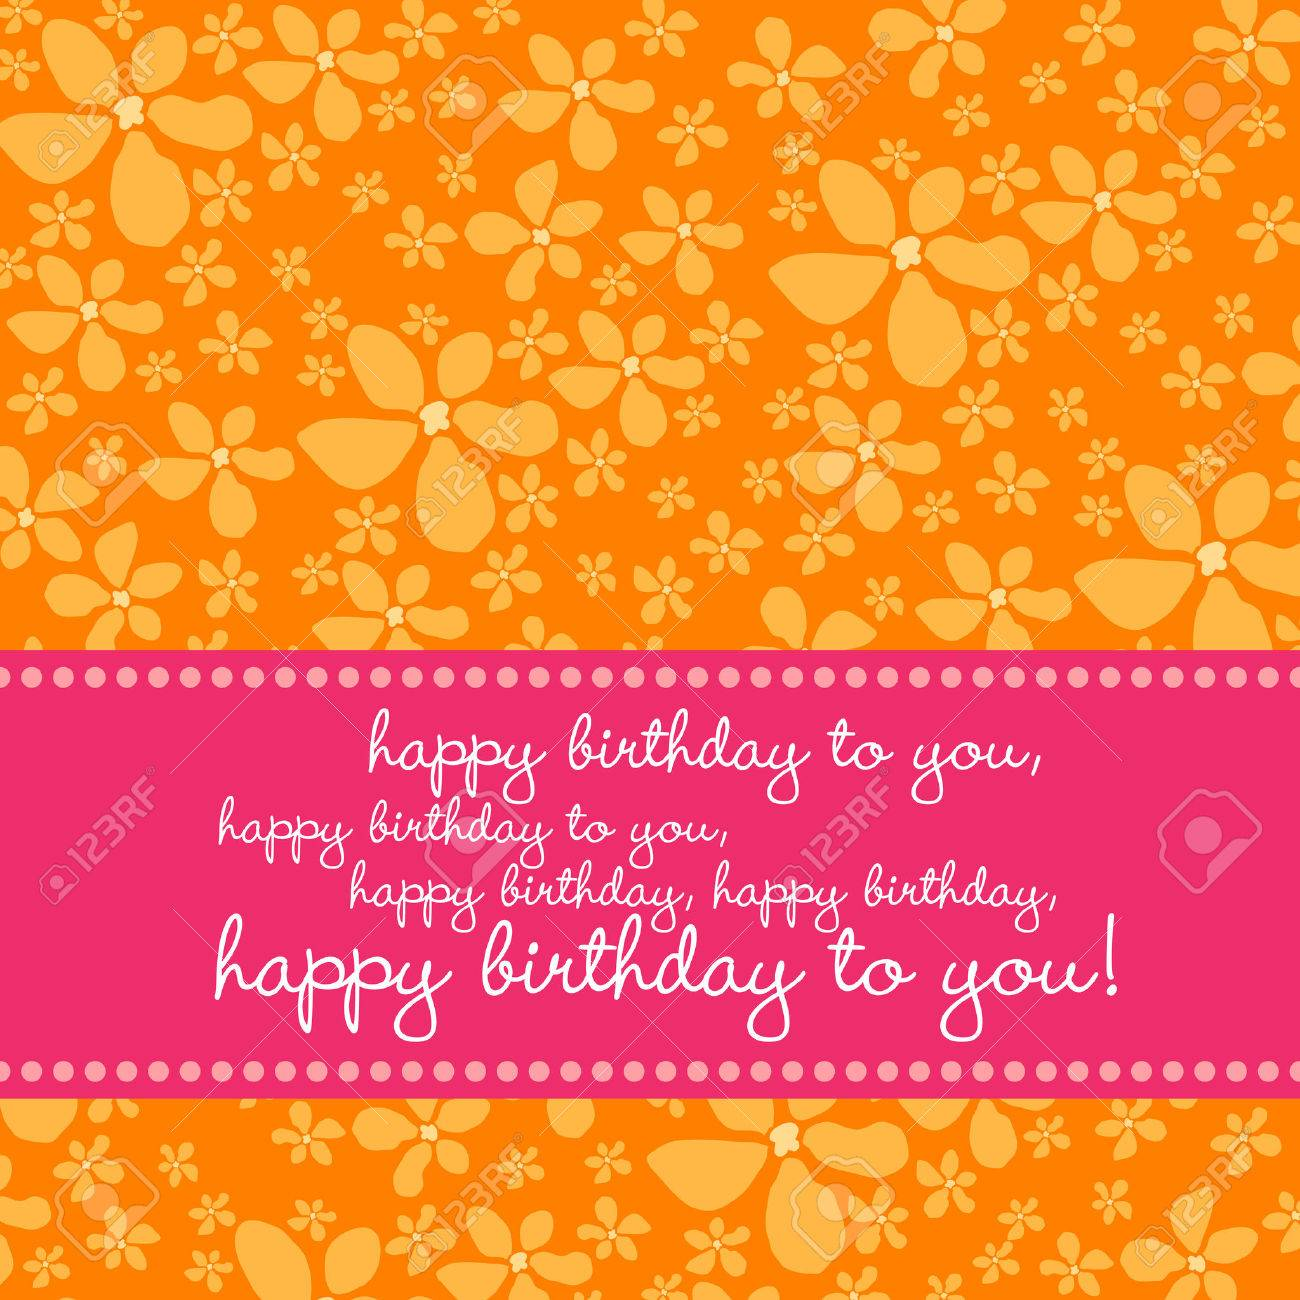 Bright colored birthday greetingcard with retro flower pattern in pink, orange, white. Stock Vector - 3452078